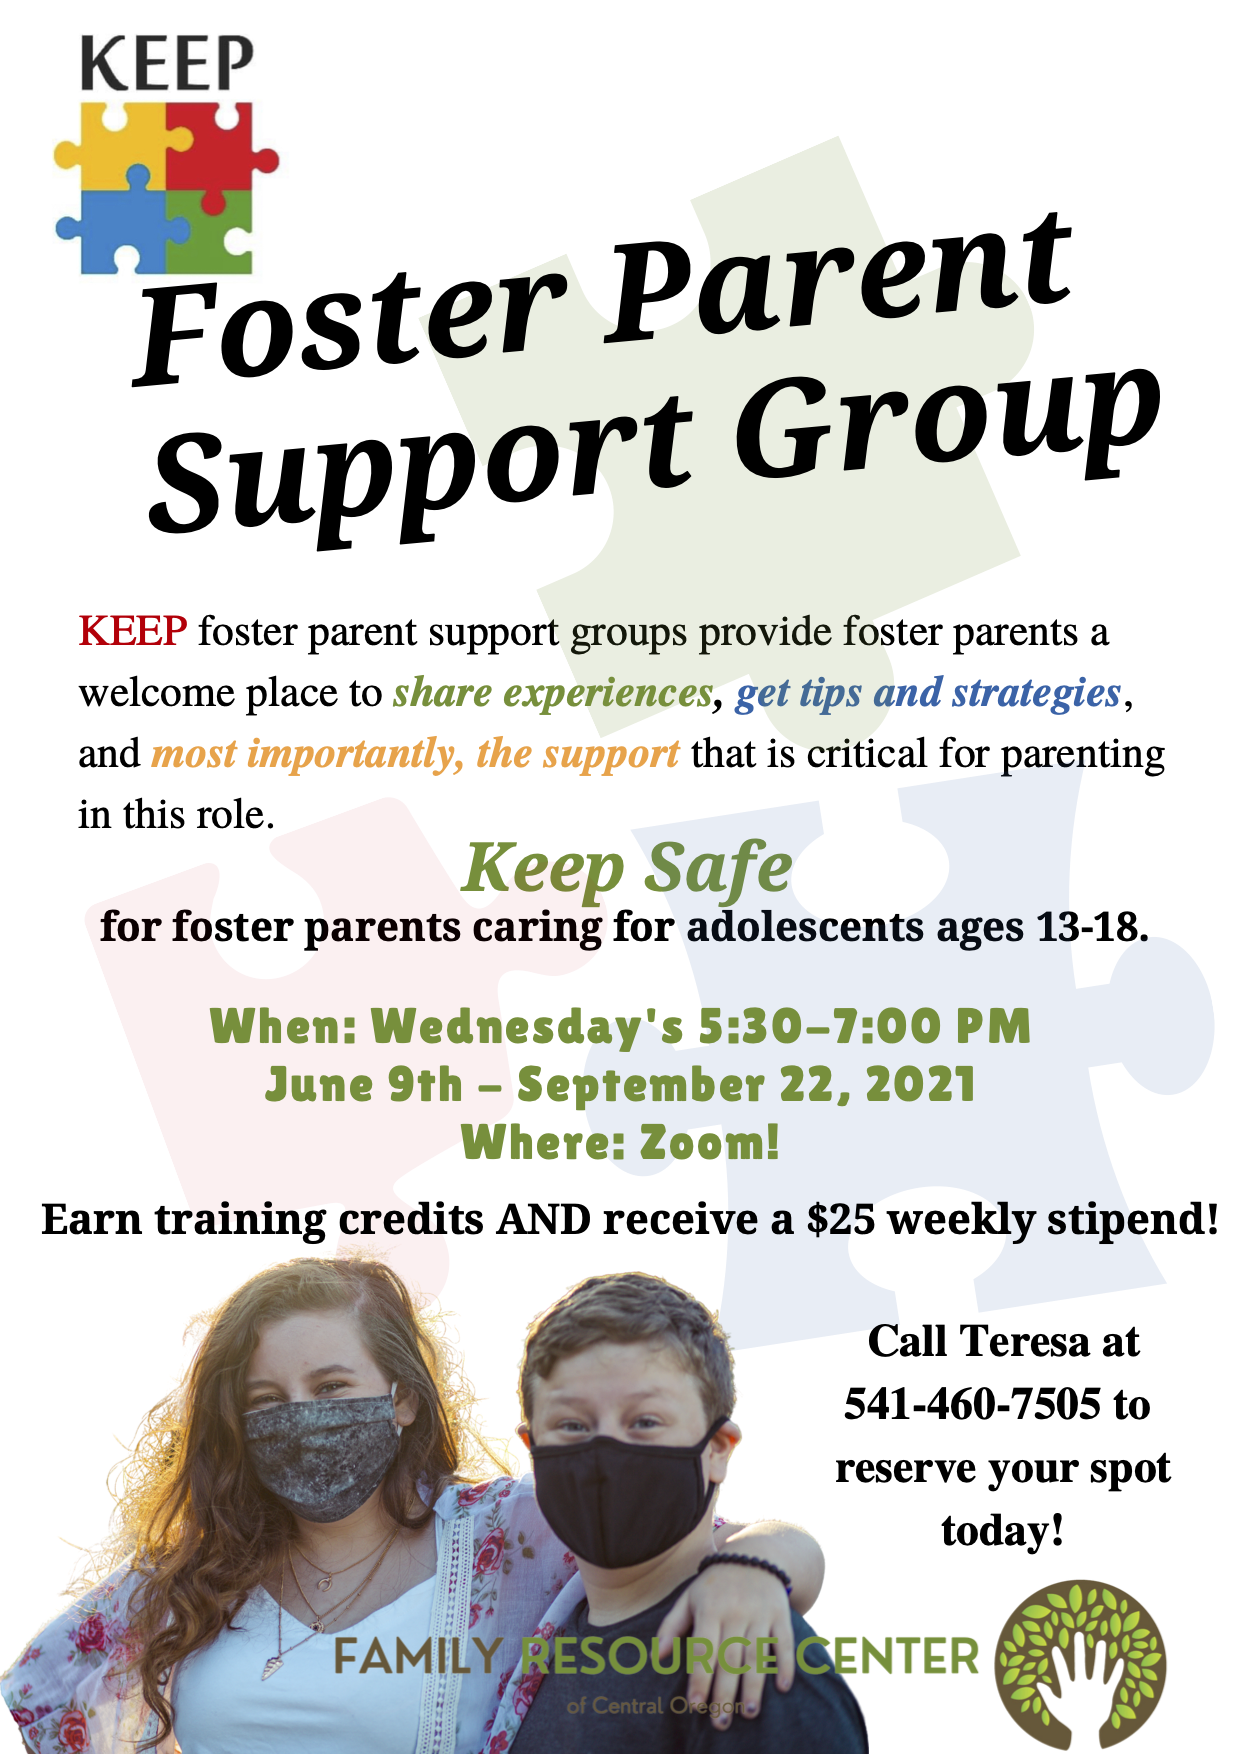 Flyer for Foster Parent Support Group